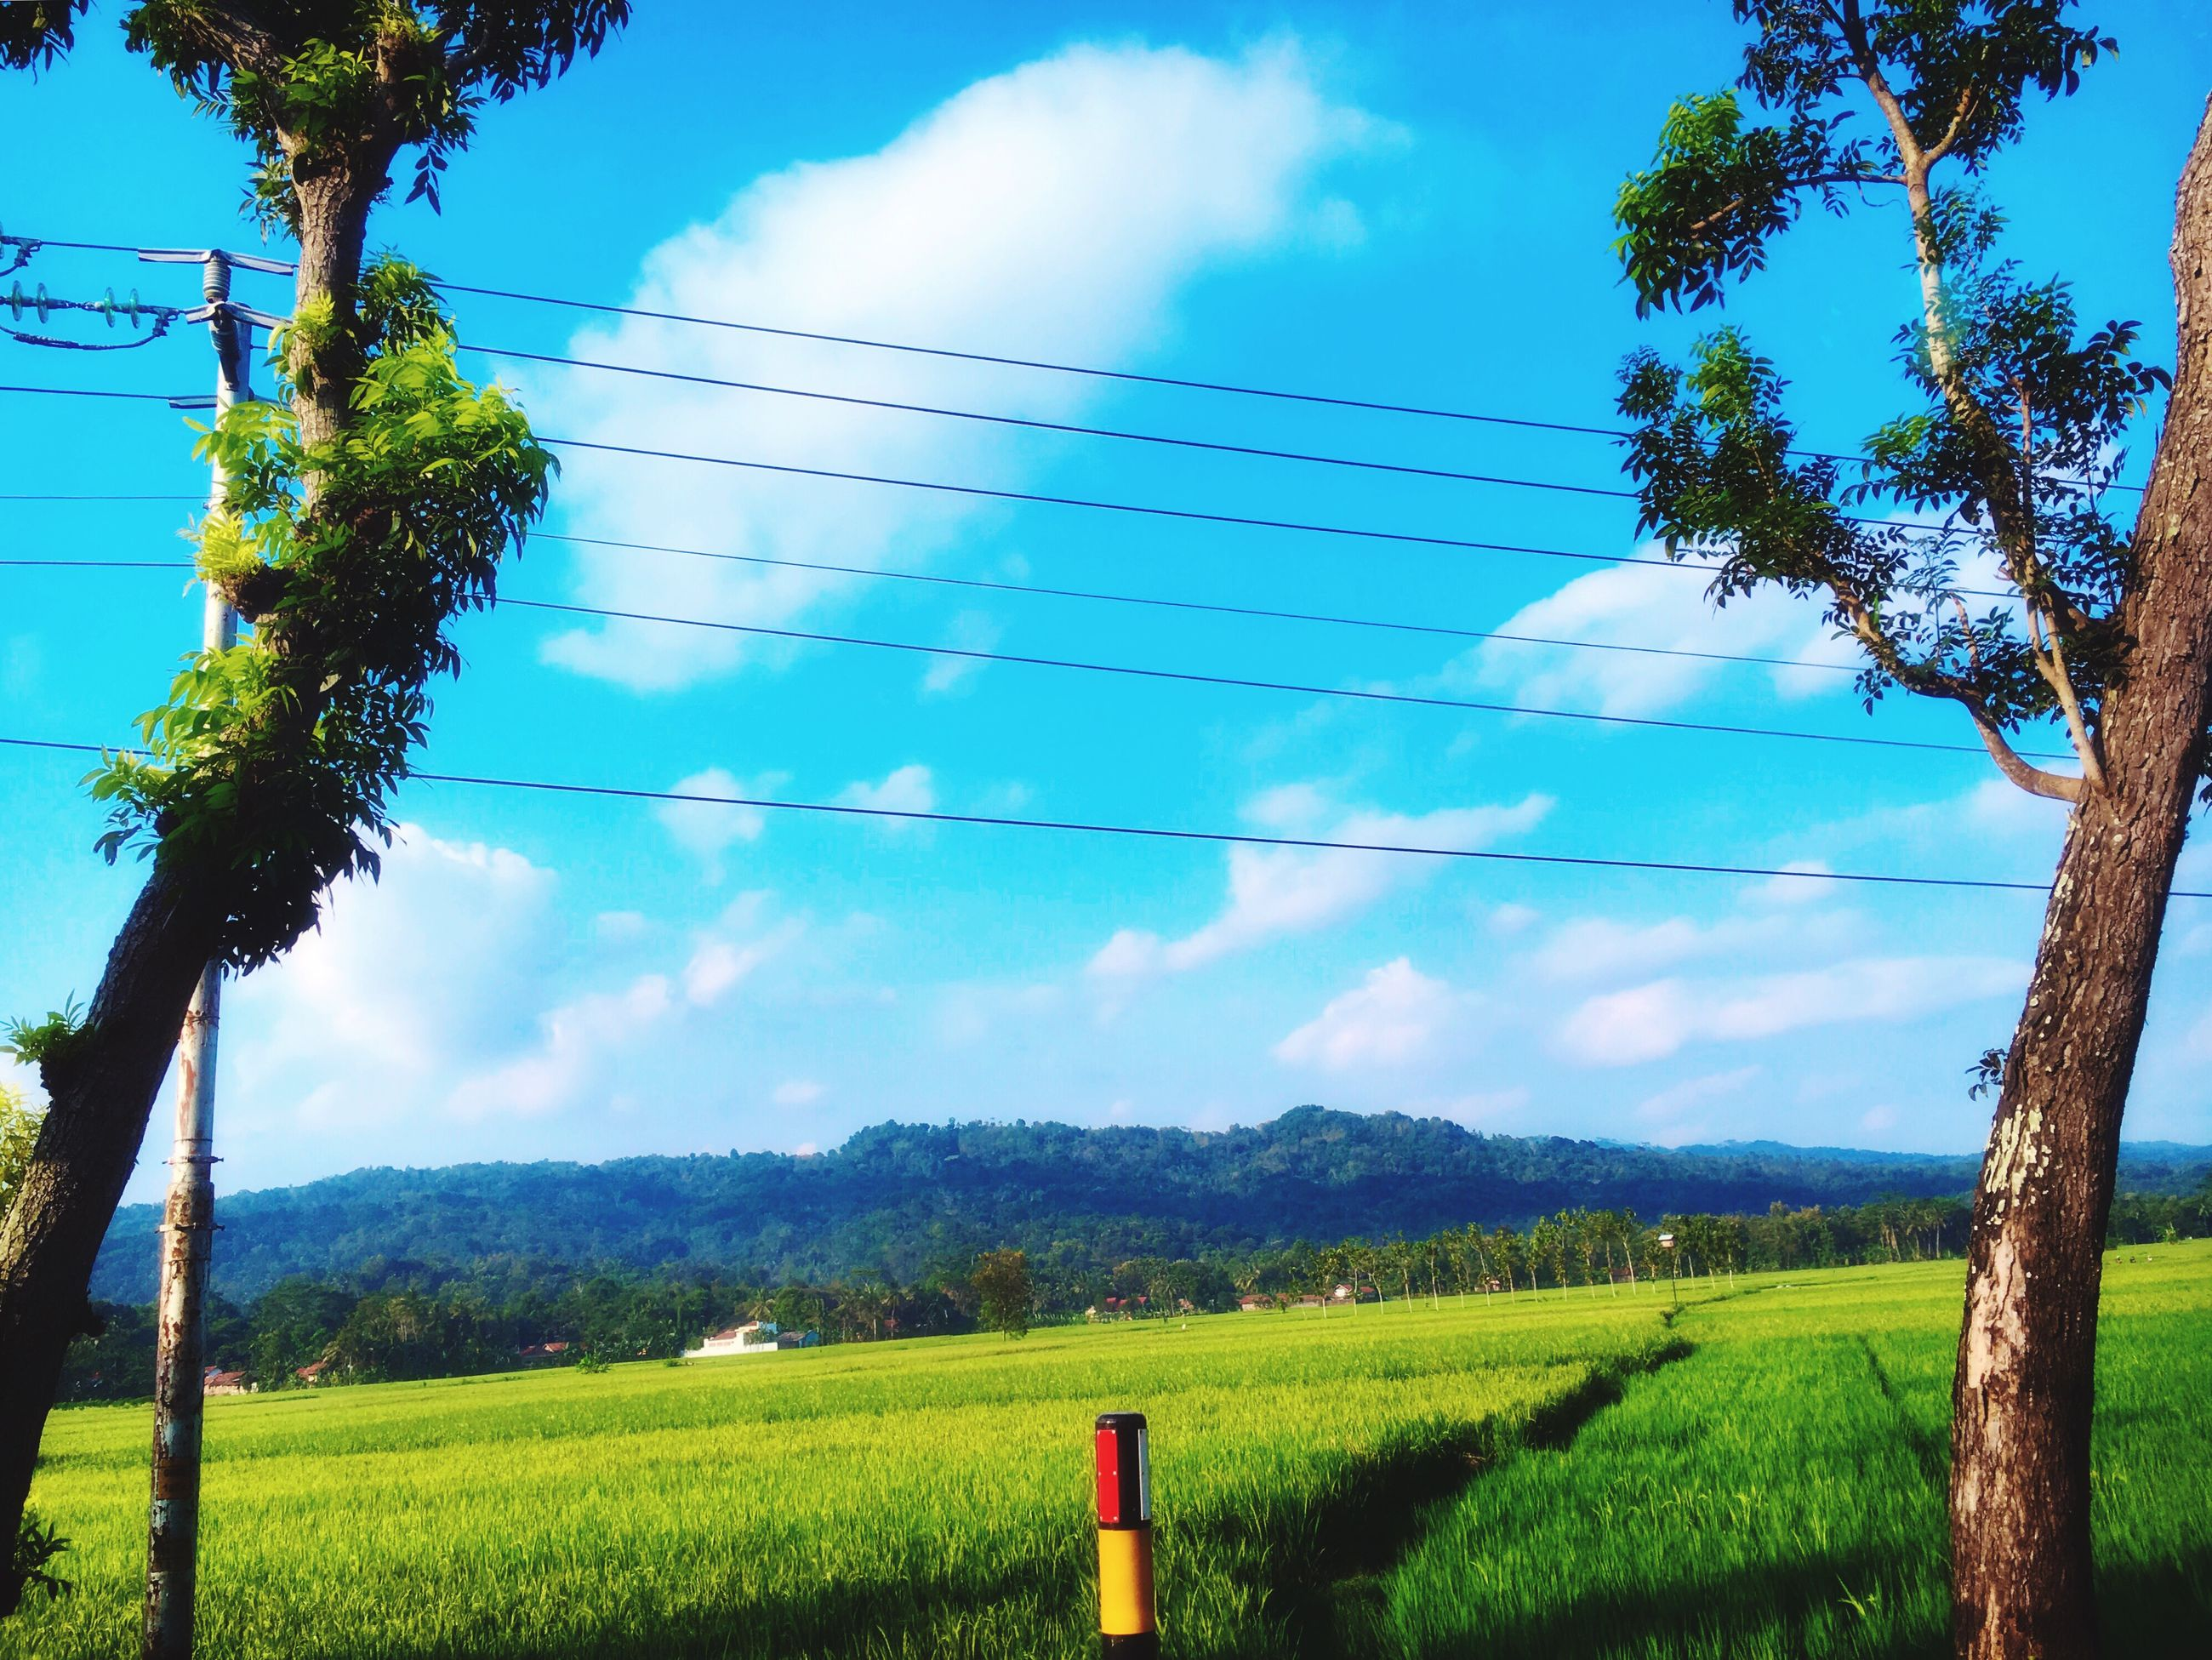 sky, landscape, field, tranquil scene, tranquility, scenics, rural scene, grass, beauty in nature, agriculture, nature, cloud - sky, green color, growth, cloud, blue, tree, grassy, non-urban scene, mountain, countryside, horizon over land, idyllic, day, no people, outdoors, green, plant, remote, cloudy, non urban scene, pole, hill